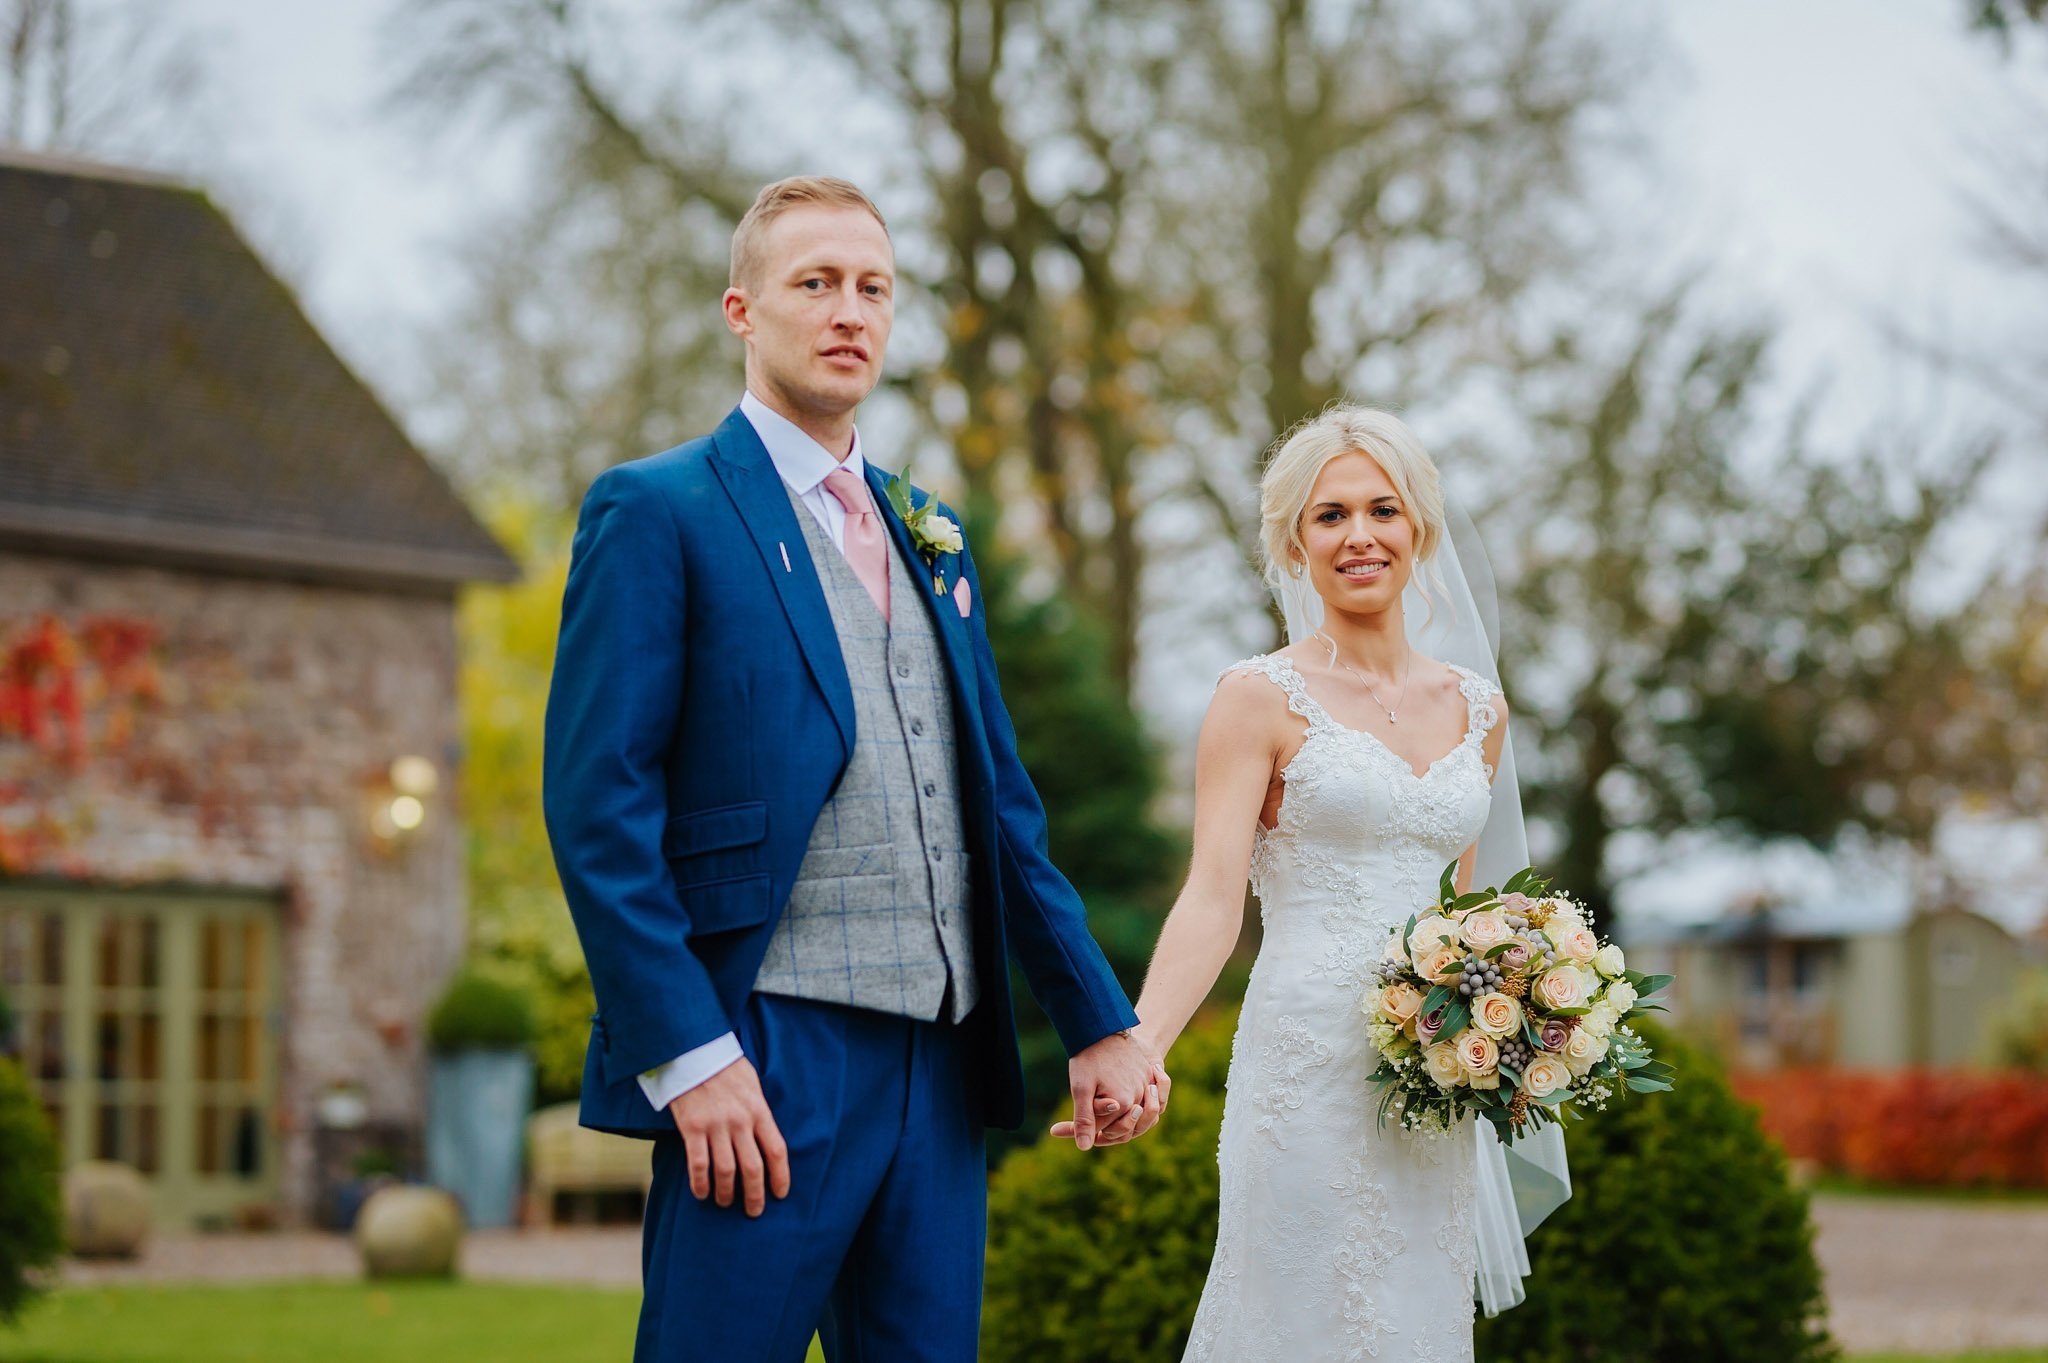 lemore manor wedding herefordshire 99 - Lemore Manor wedding, Herefordshire - West Midlands | Sadie + Ken